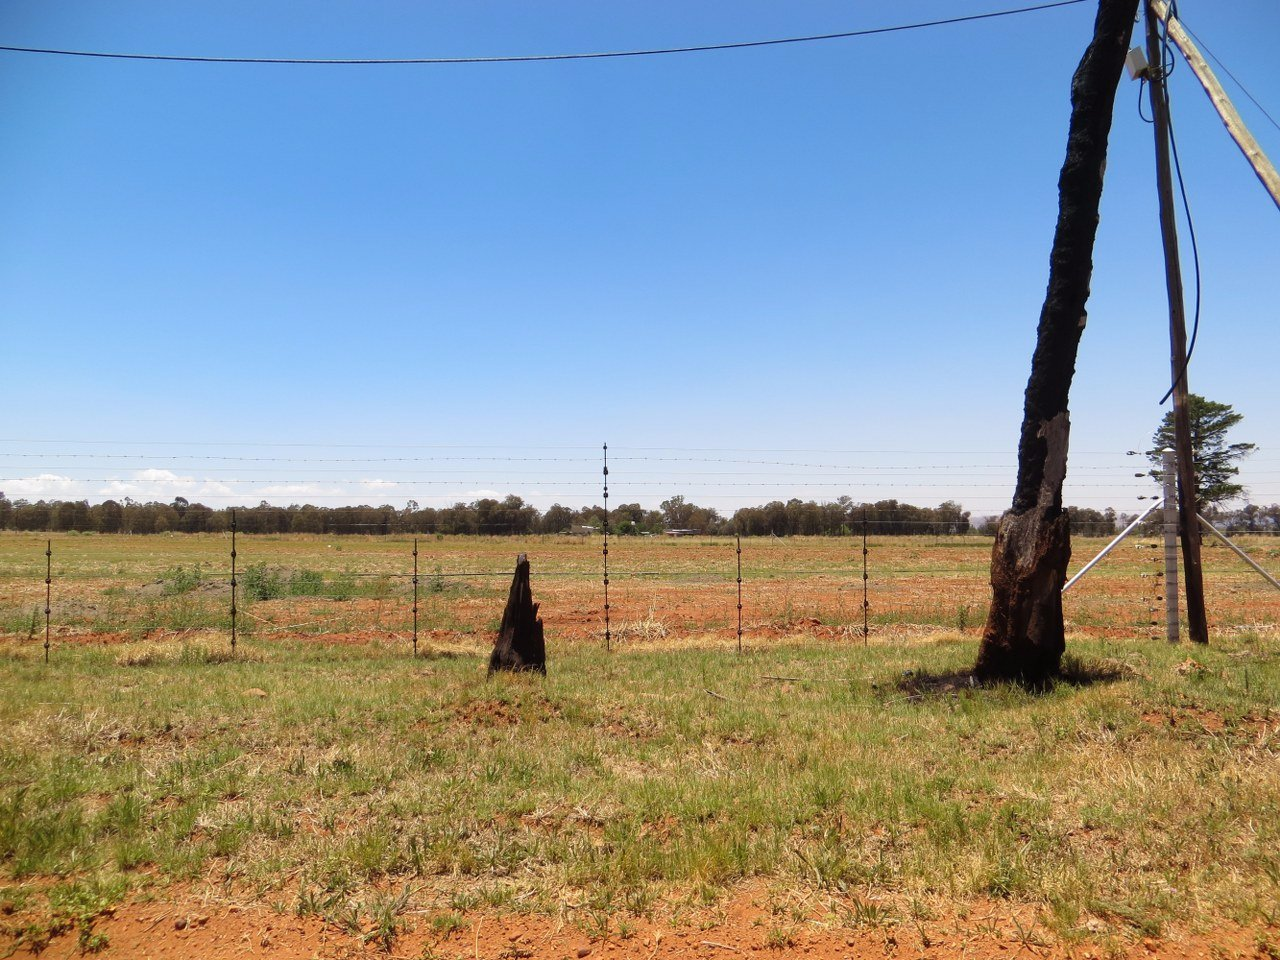 Valley Settlements A H property for sale. Ref No: 13521263. Picture no 3